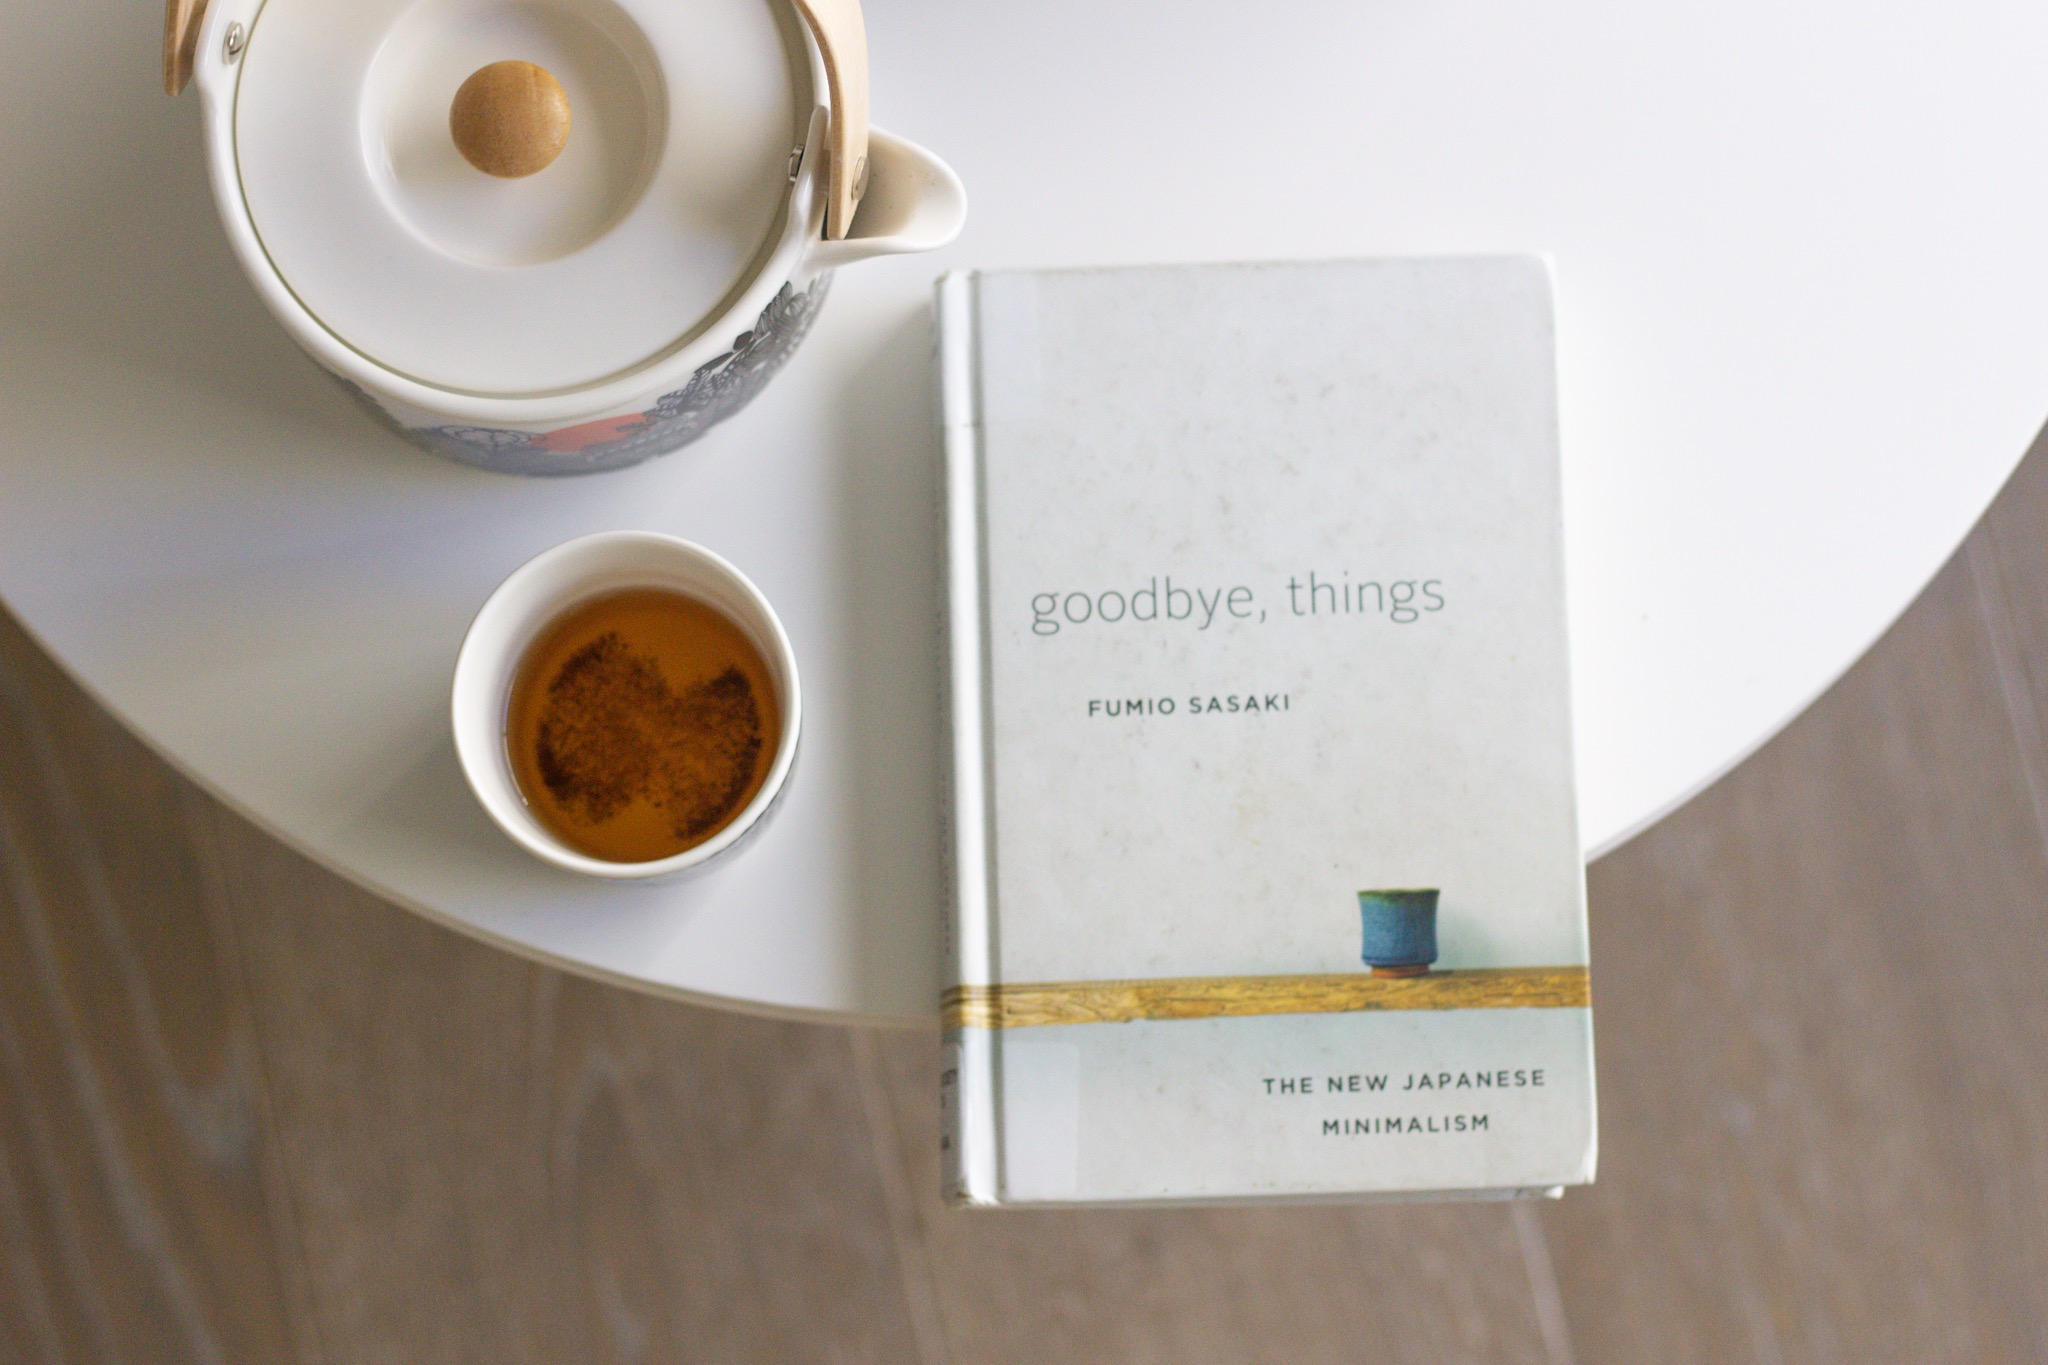 Best zero waste books - goodbye things